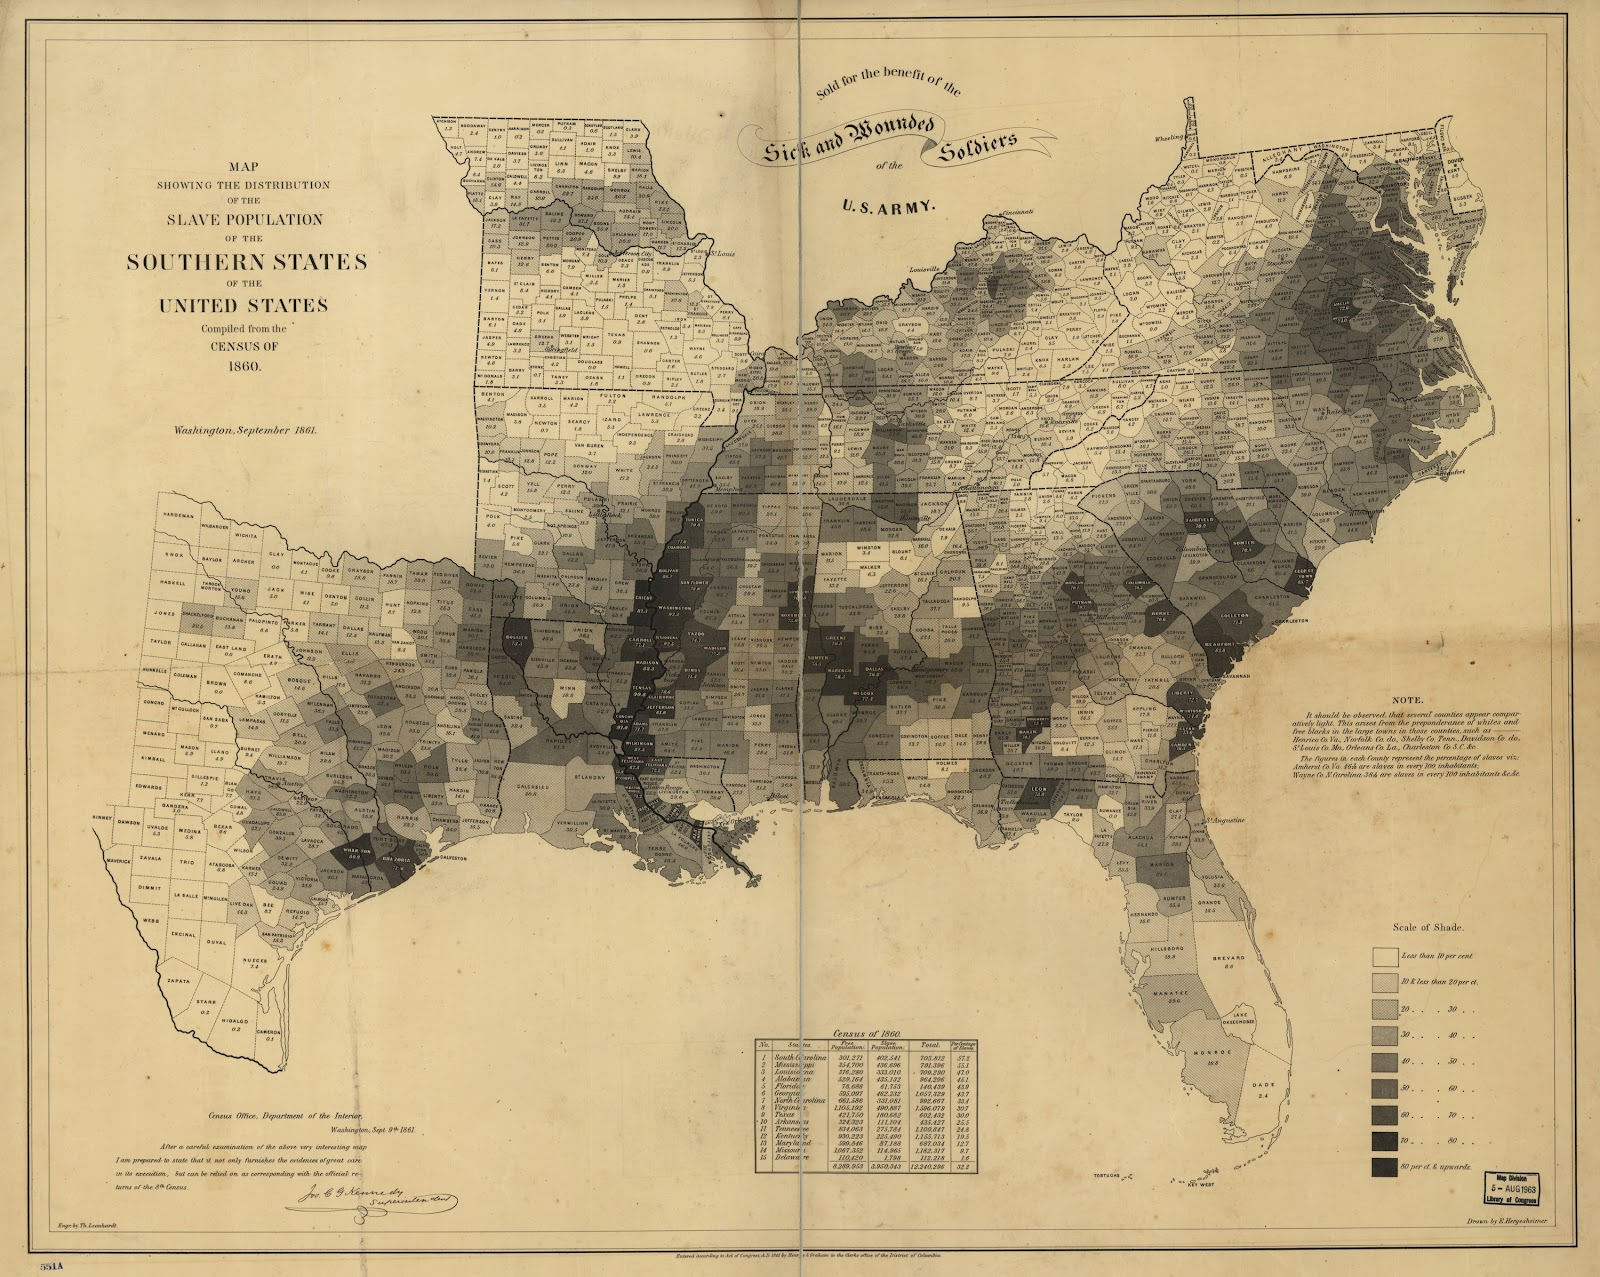 slave population of the southern states 1860 lincoln used this map to make visual arguments about confederate motivations and enthusiasm for succession